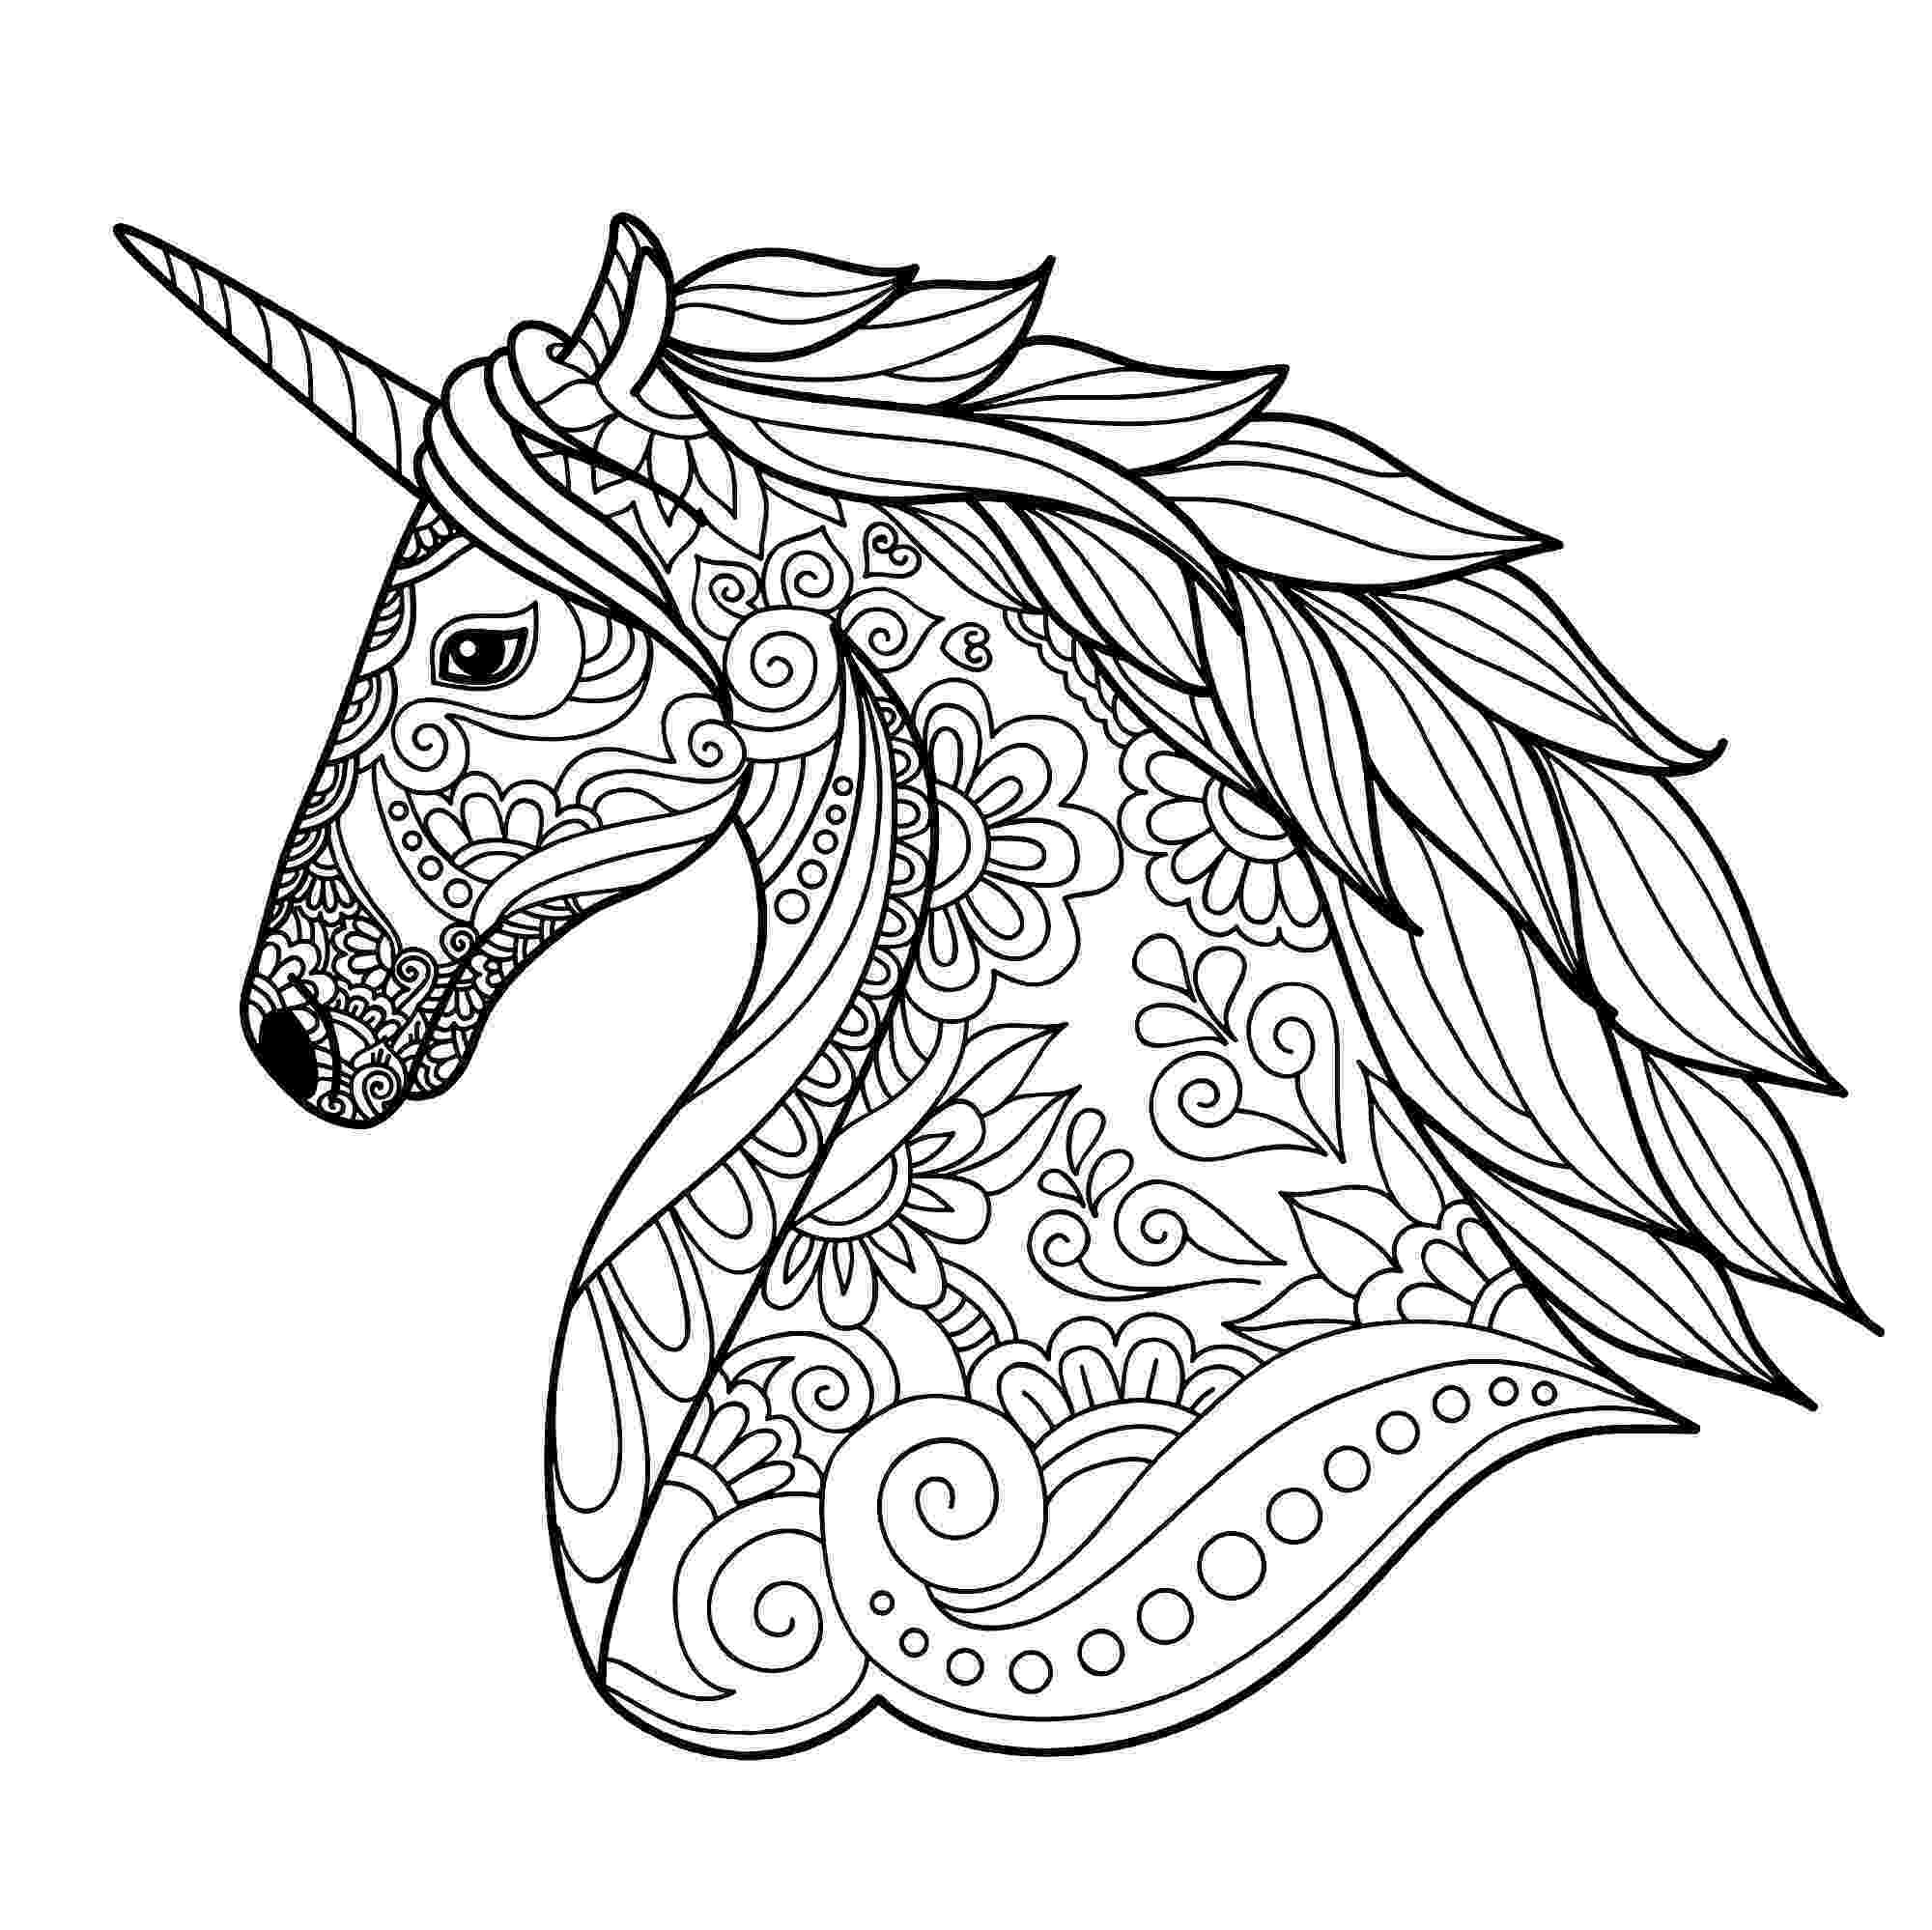 unicorn picture to color unicorn drawing pages at getdrawings free download unicorn to picture color